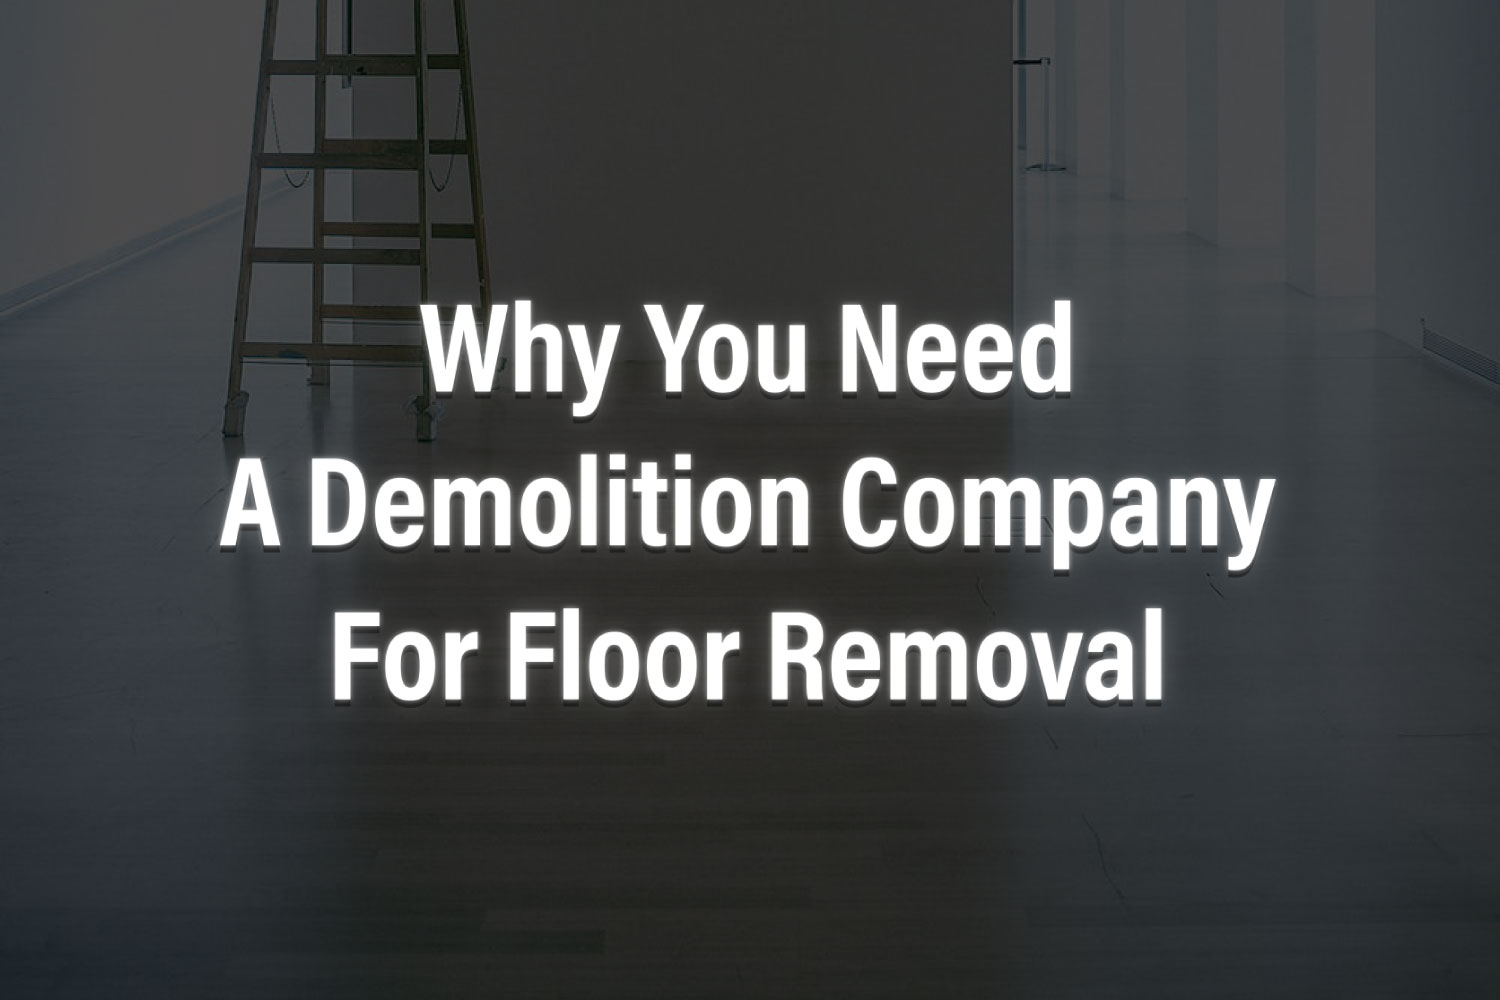 Why you need a professional demolition contractor for floor removal